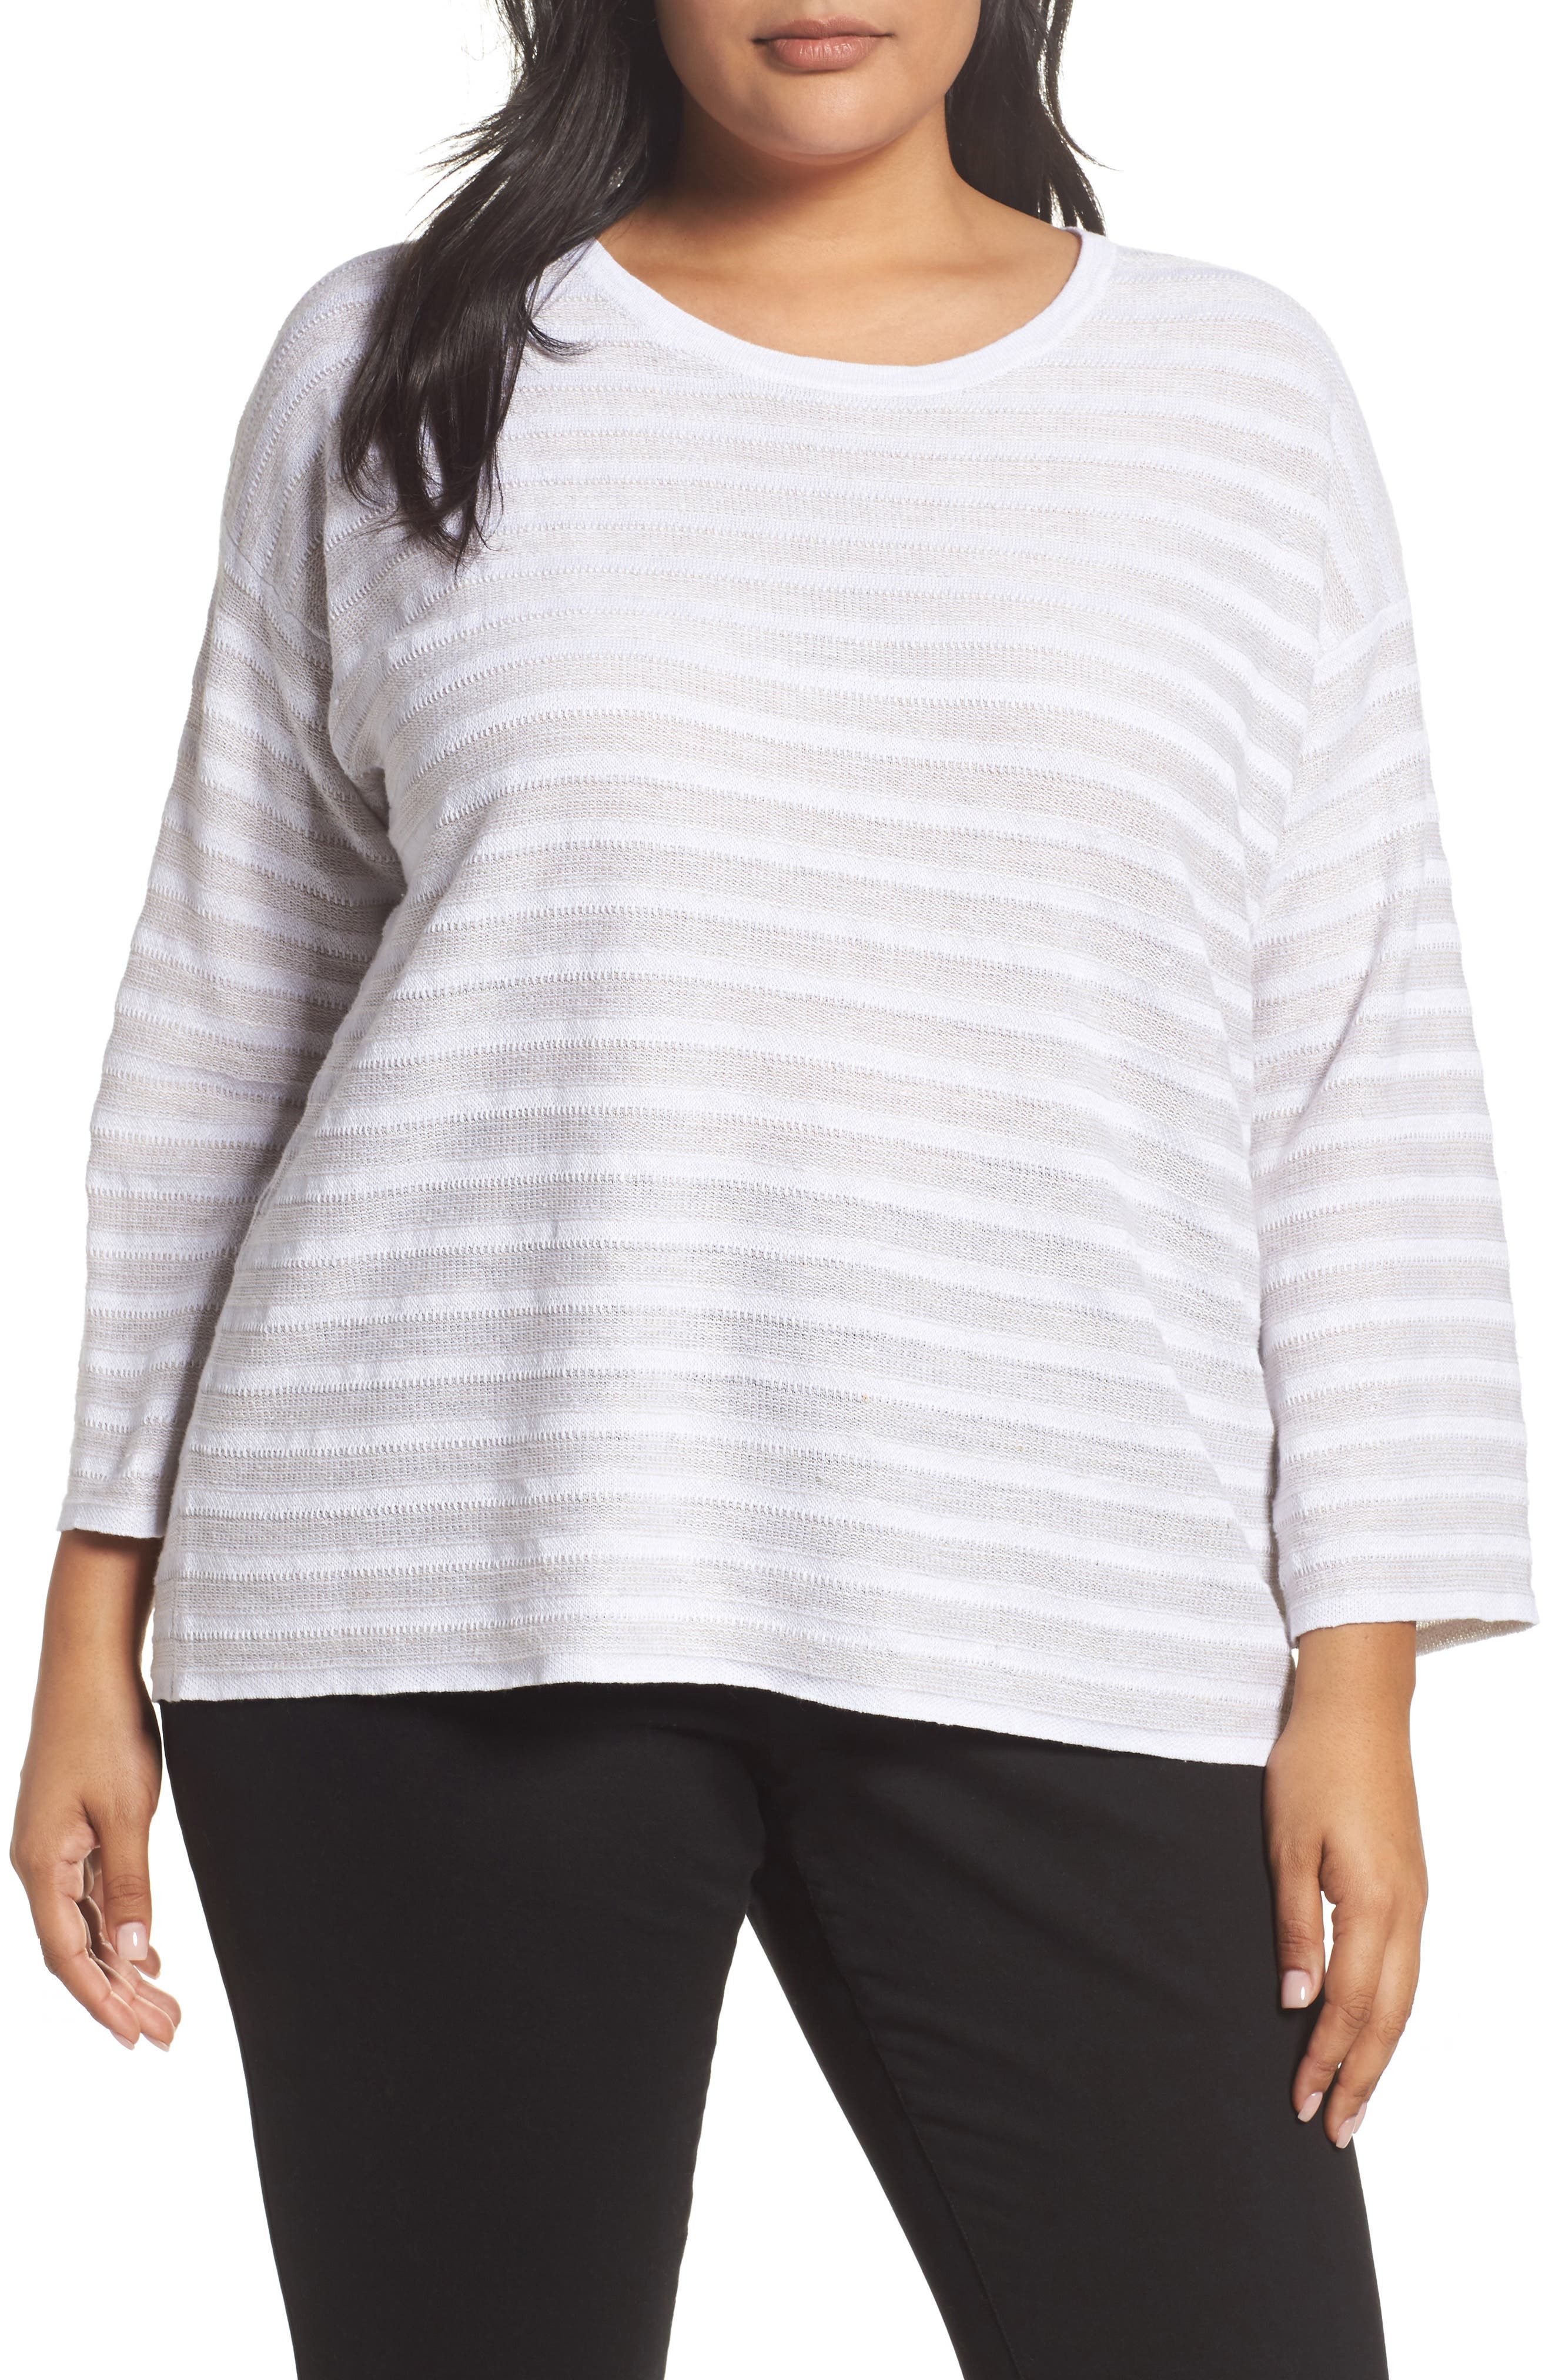 Main Image - Eileen Fisher Textured Organic Linen Sweater (Plus Size)